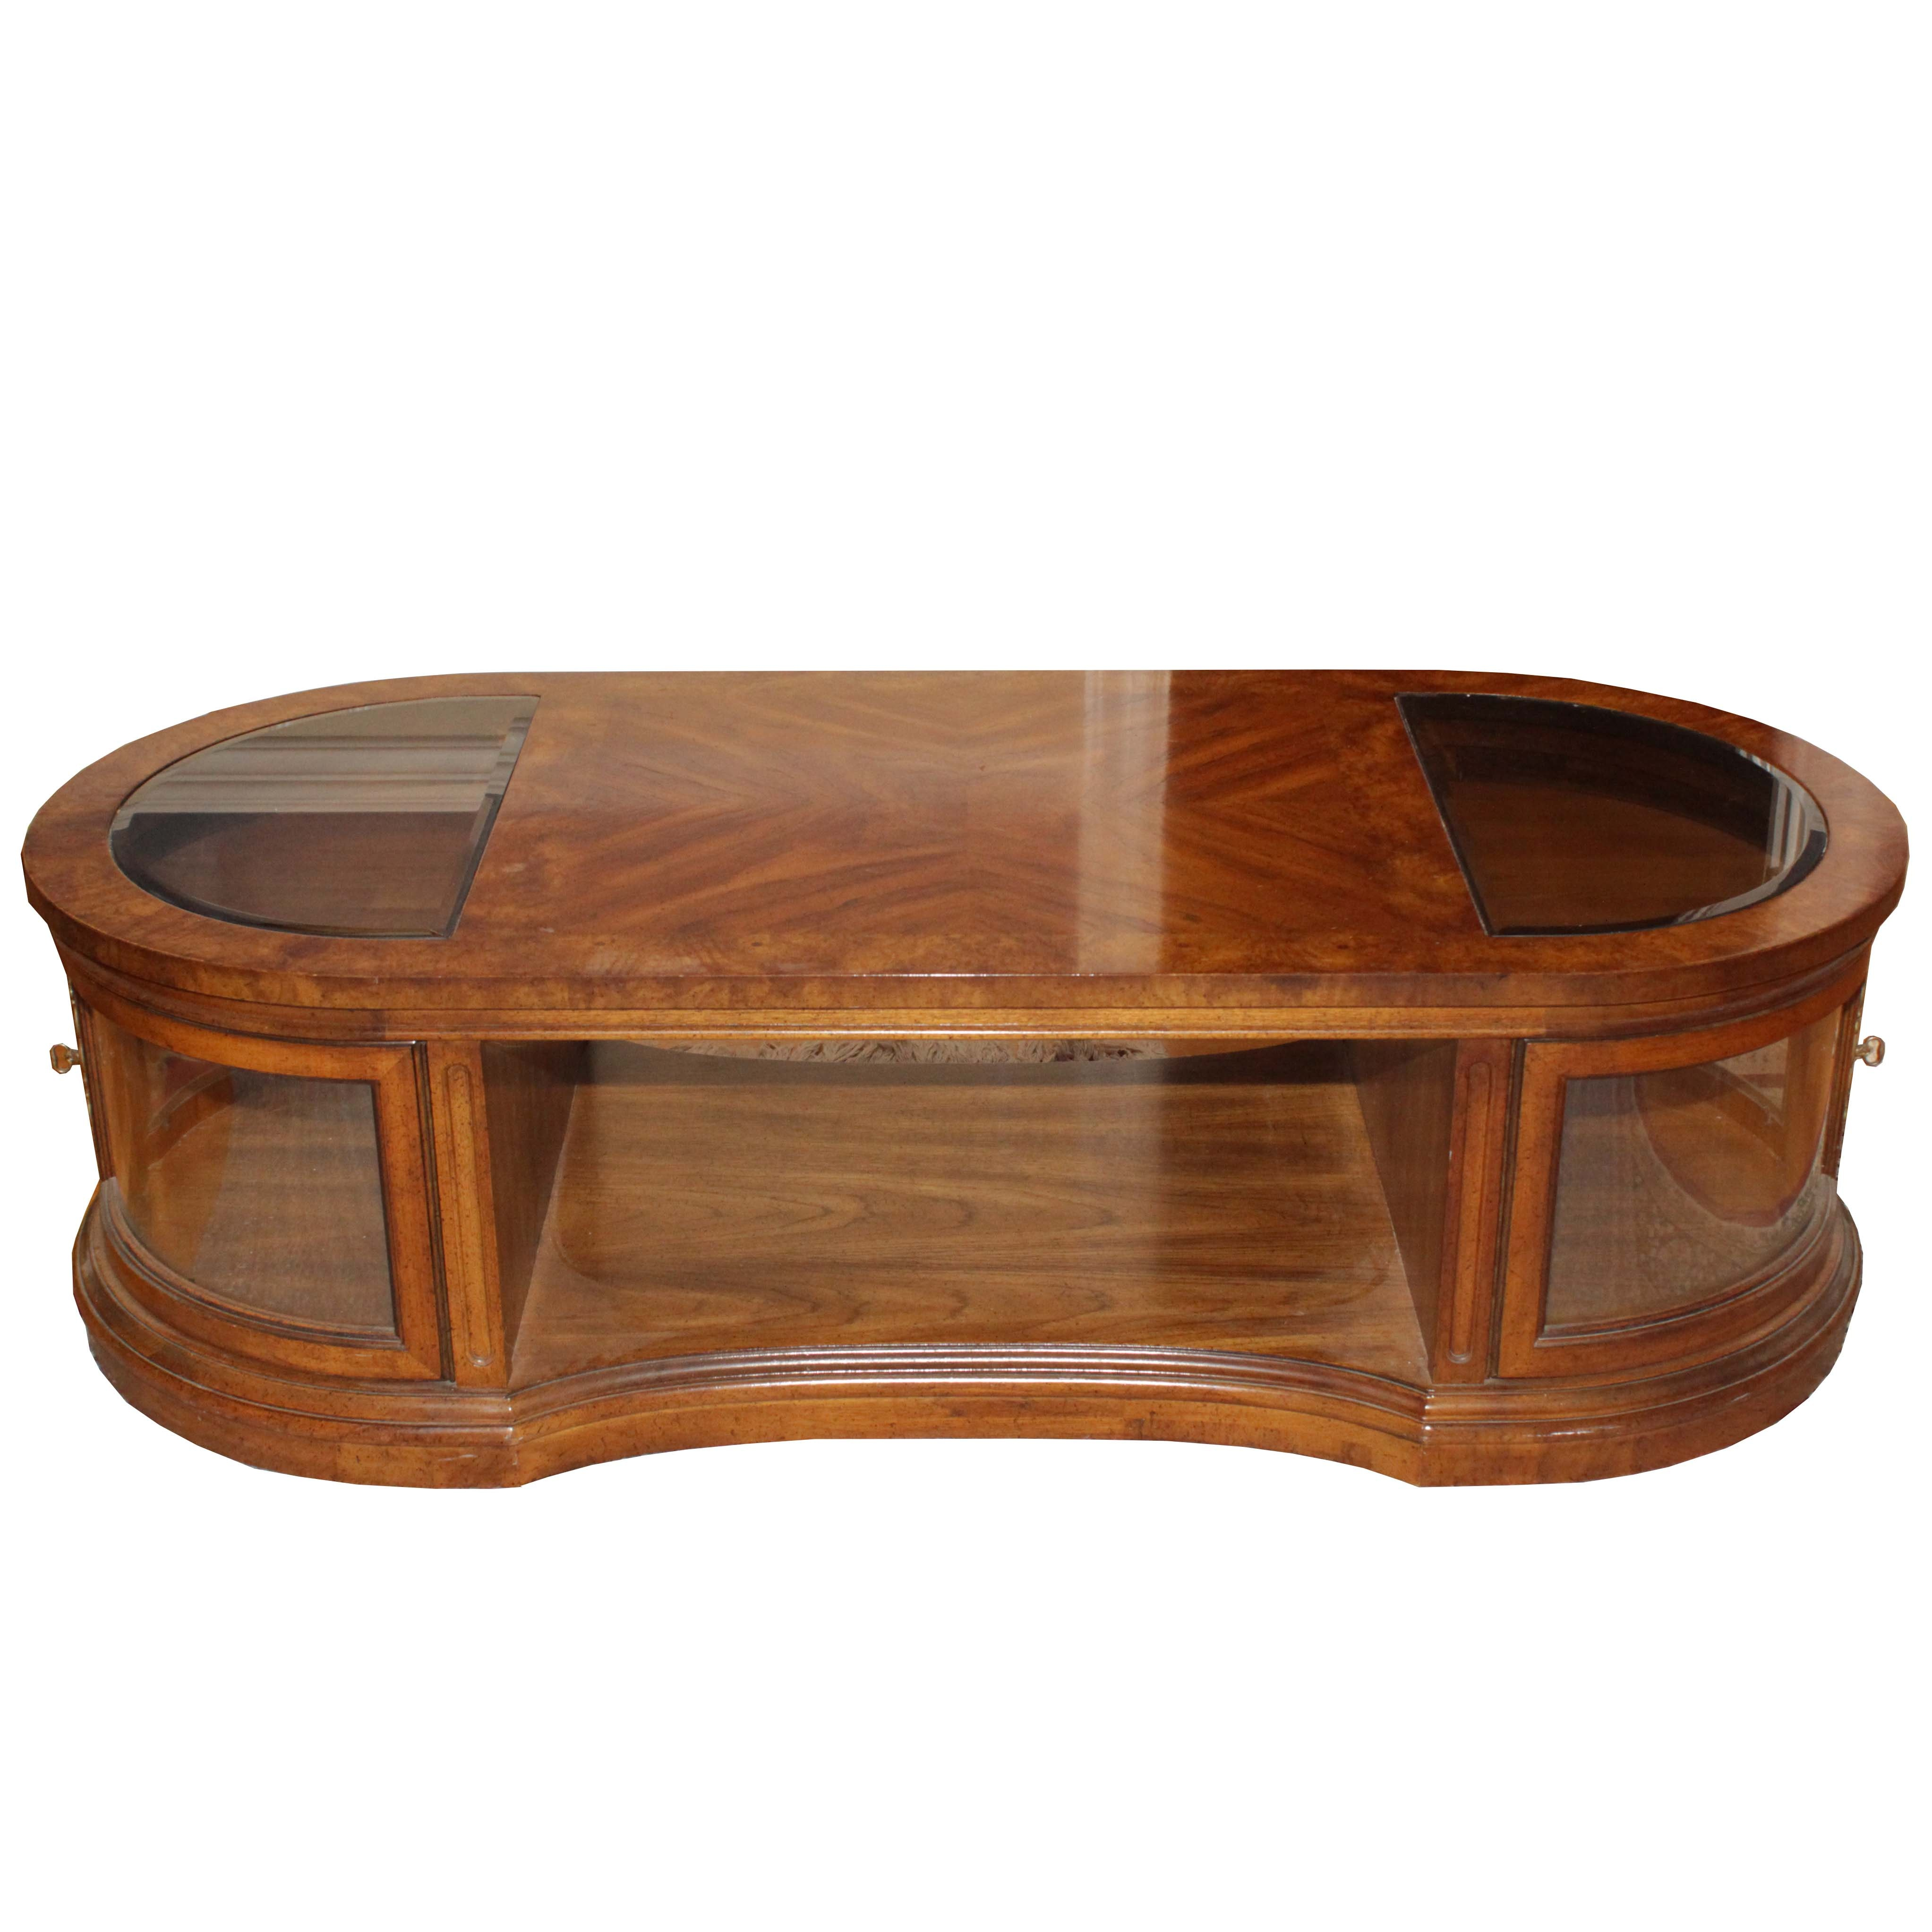 Oval Walnut and Glass Coffee Table, Late 20th Century